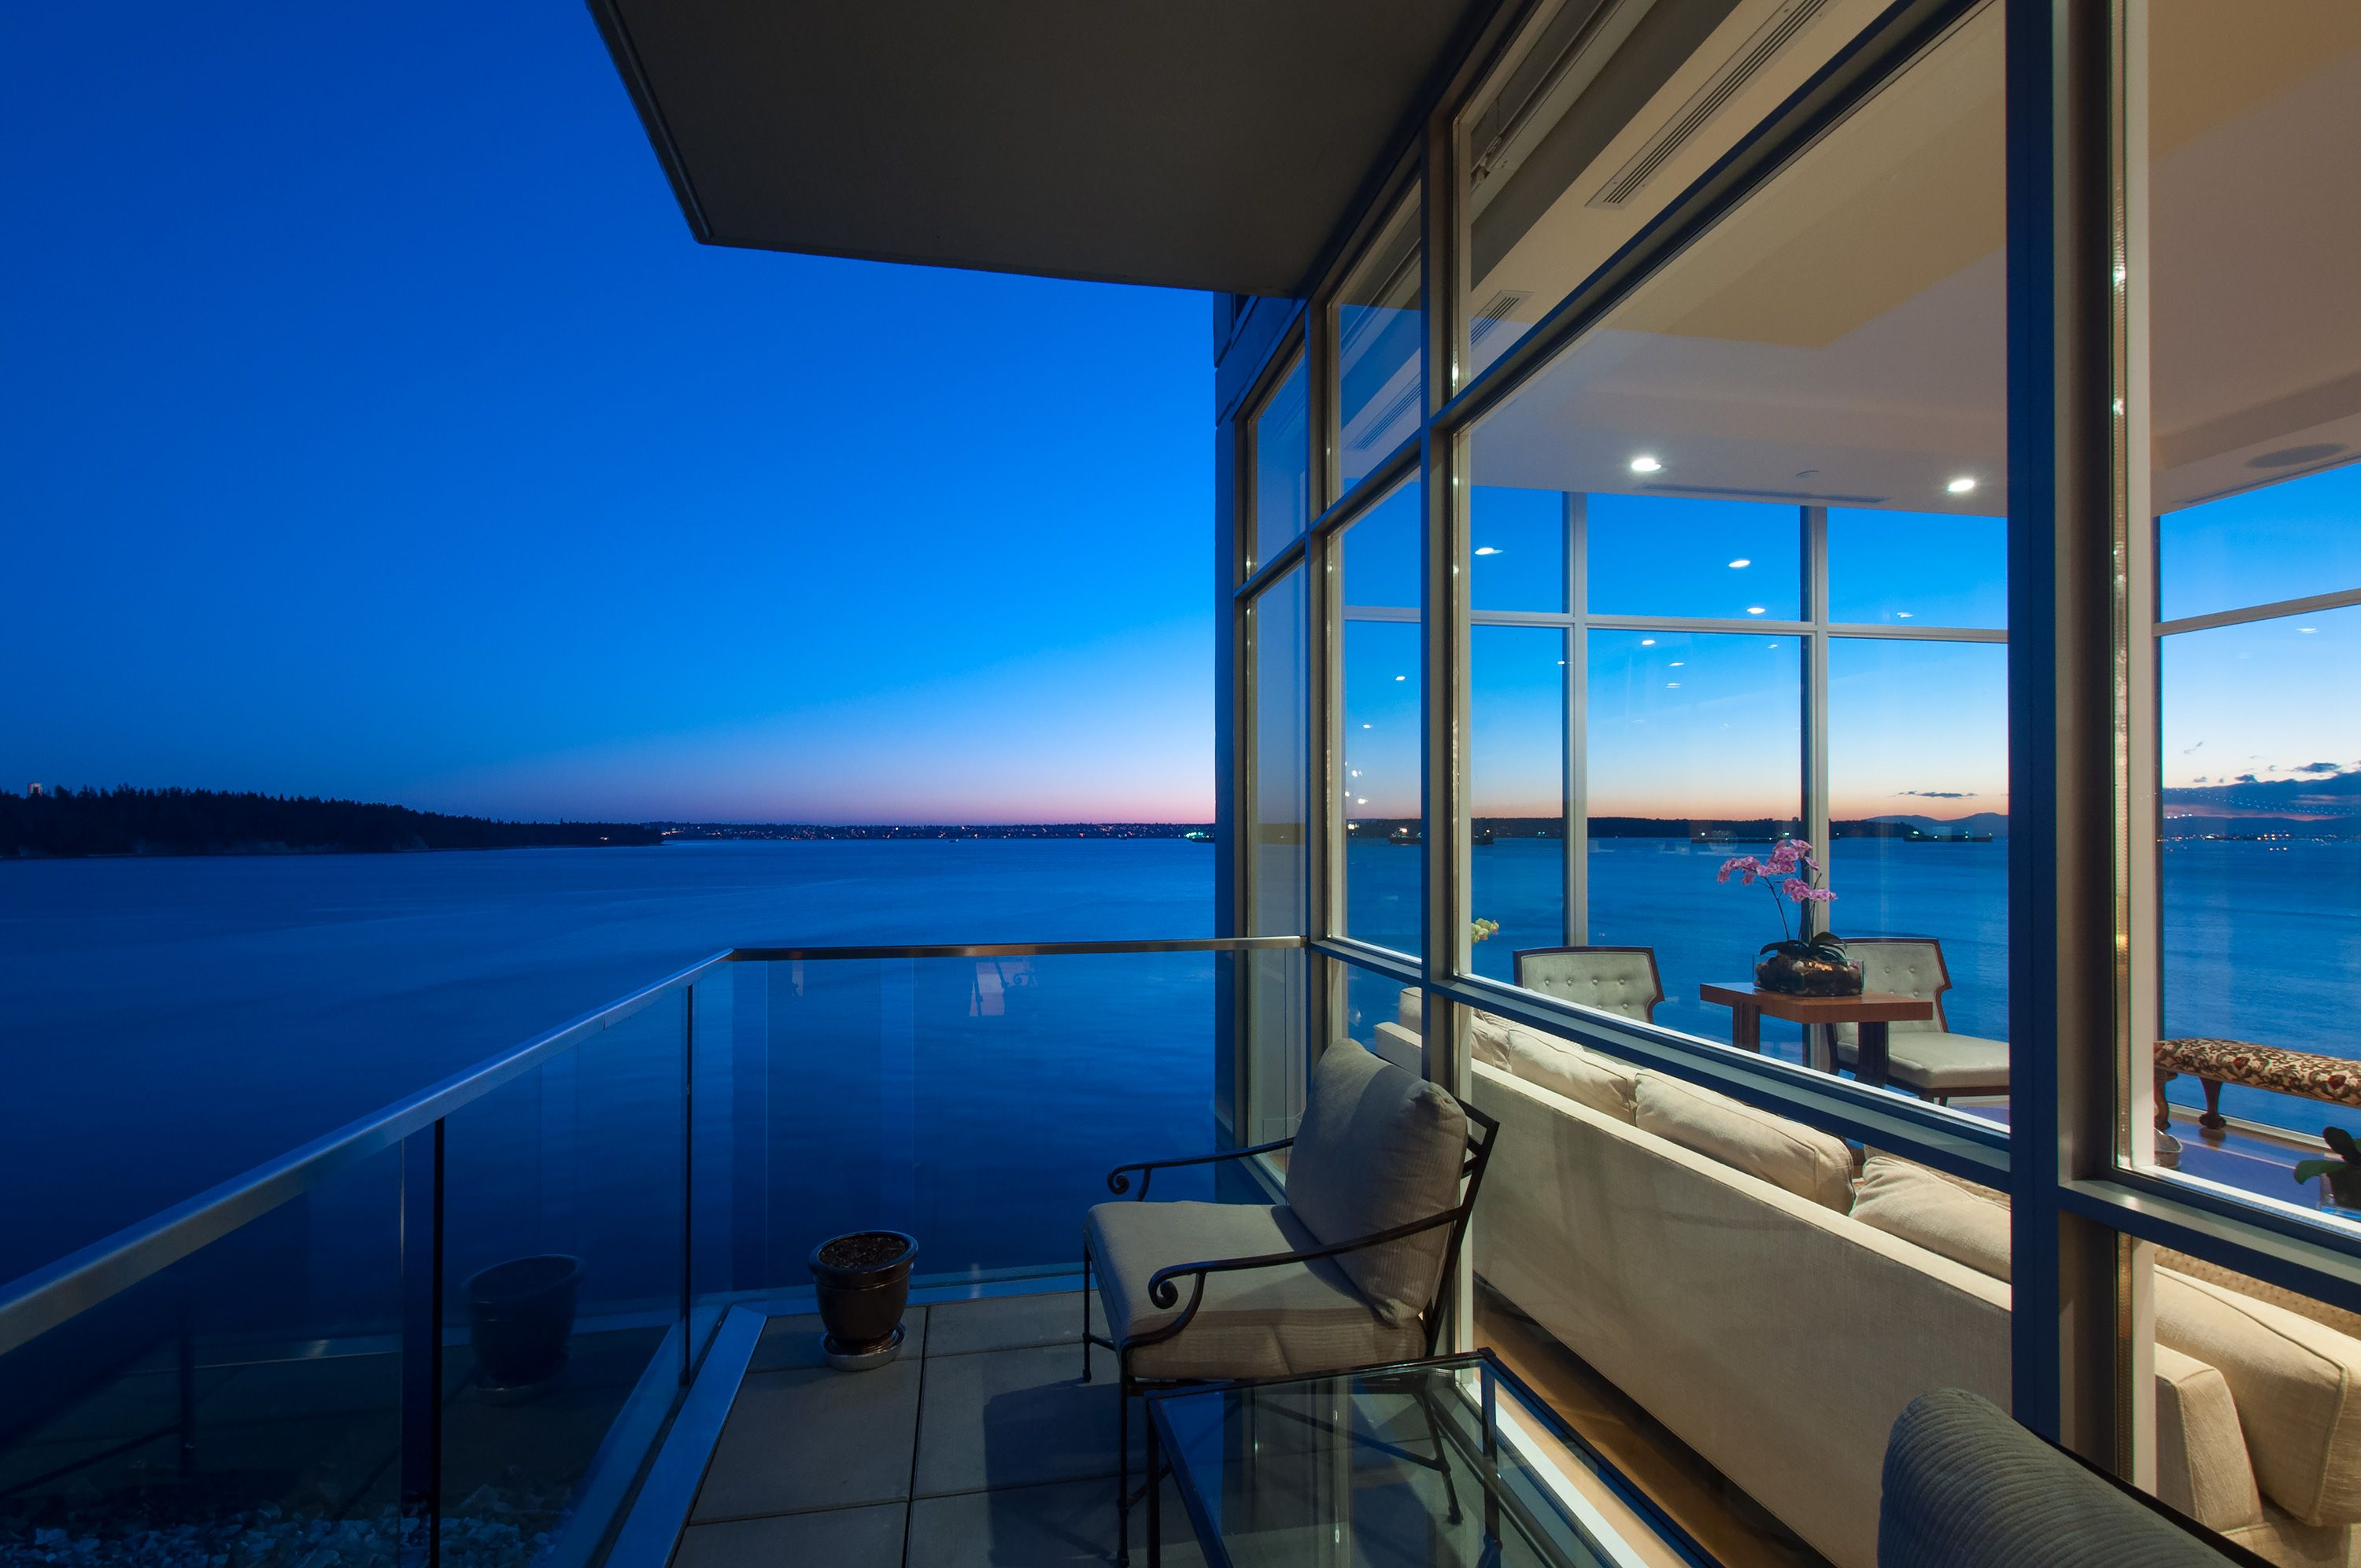 Patio with a view in West Vancouver's most luxurious condo #blurrdMEDIA #architecture #photography